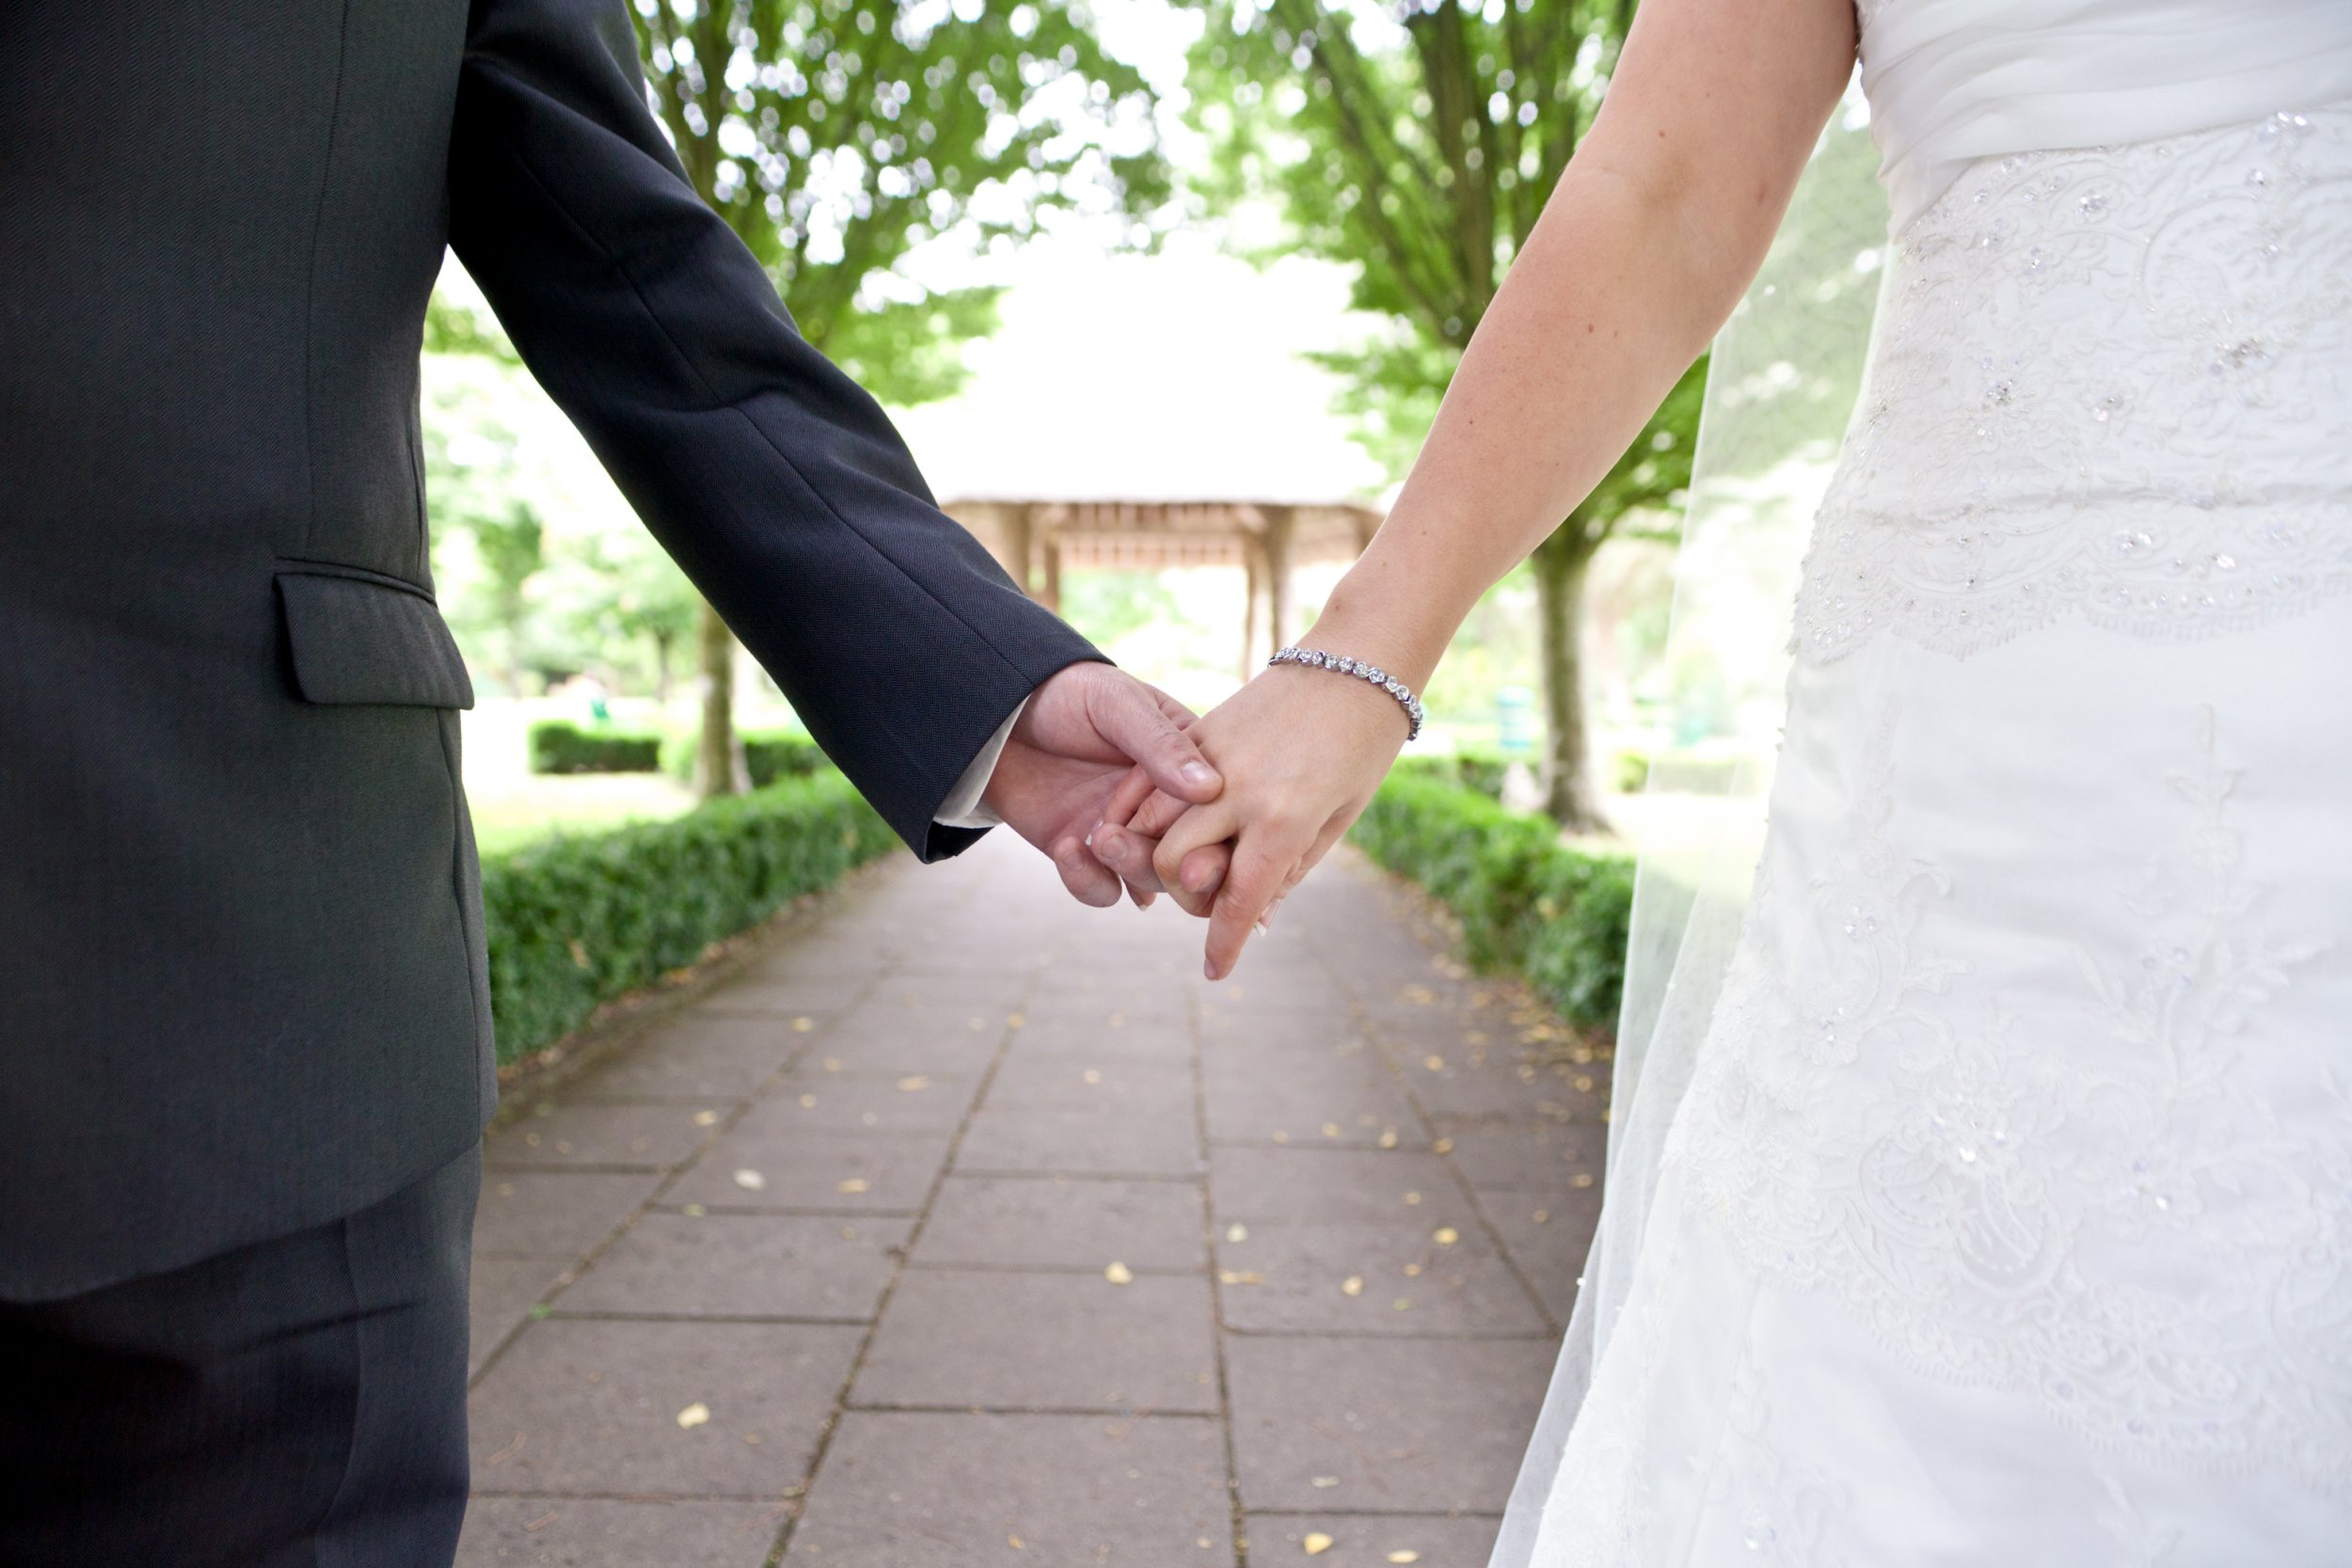 Couples could be allowed to get married during open-air ceremonies